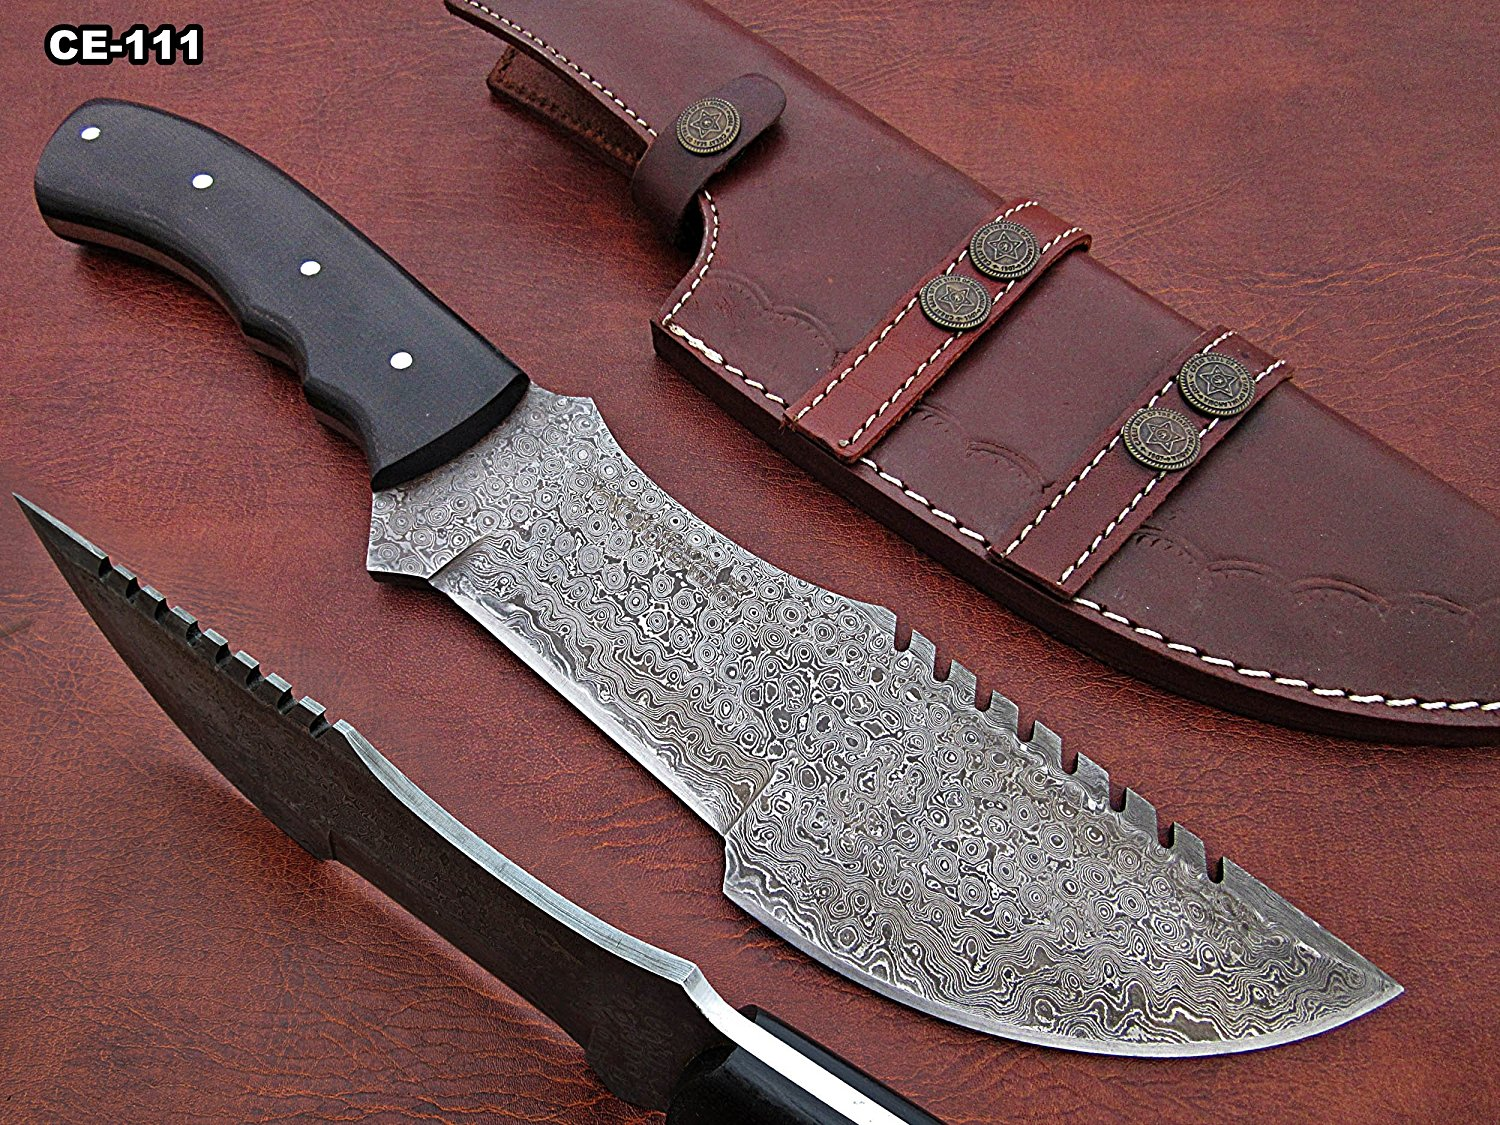 Hand Made Damascus Steel Hunting Knife With Black Wood Micarta Handle.